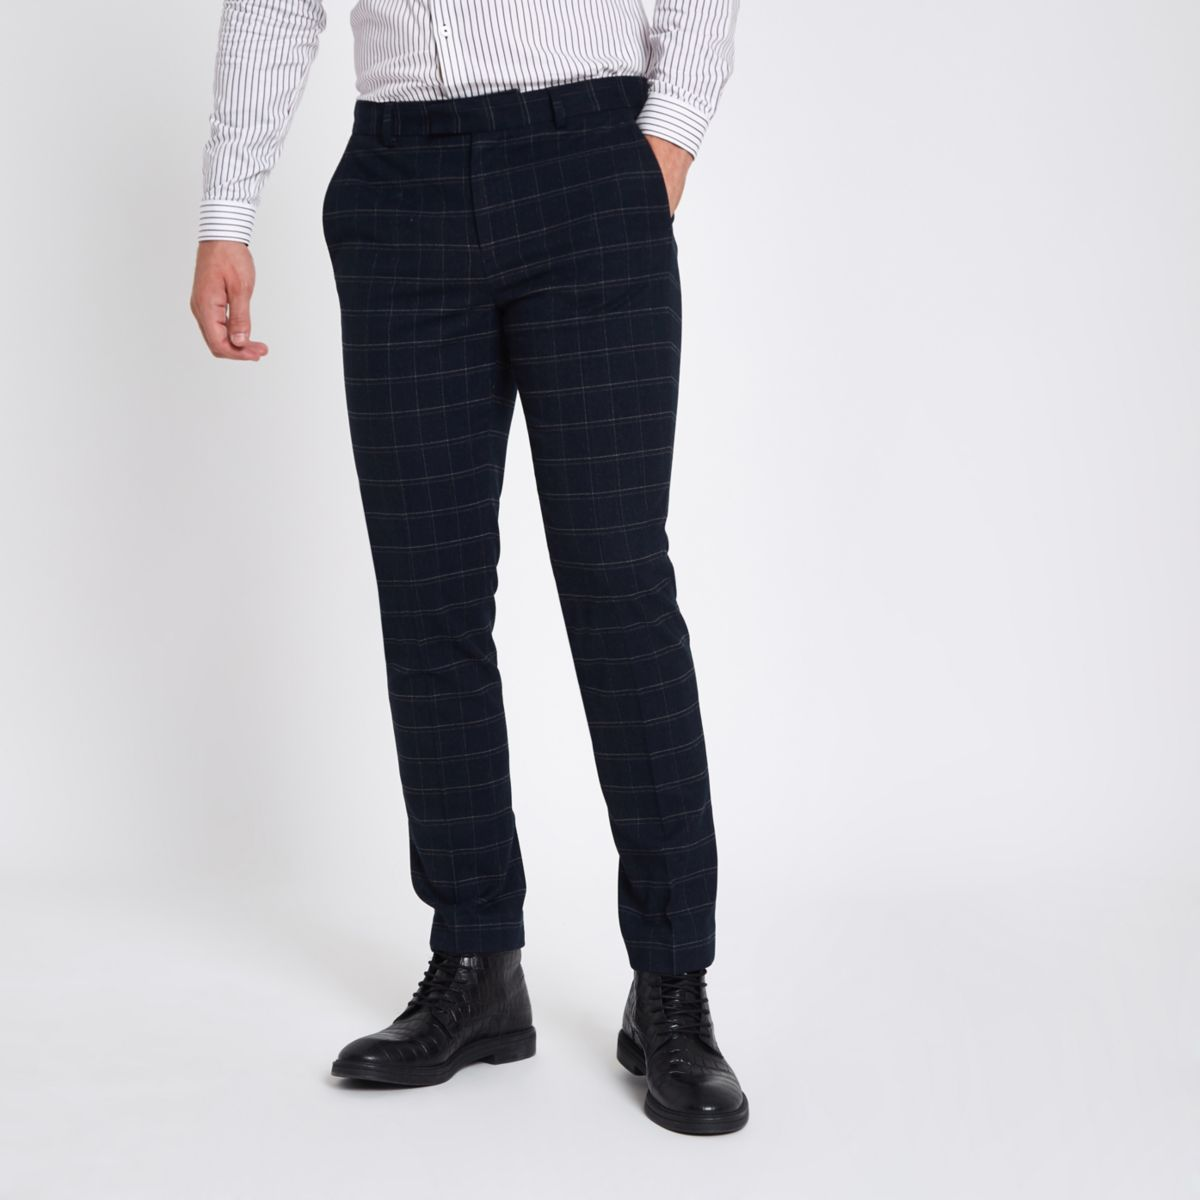 Navy window pane check skinny suit pants